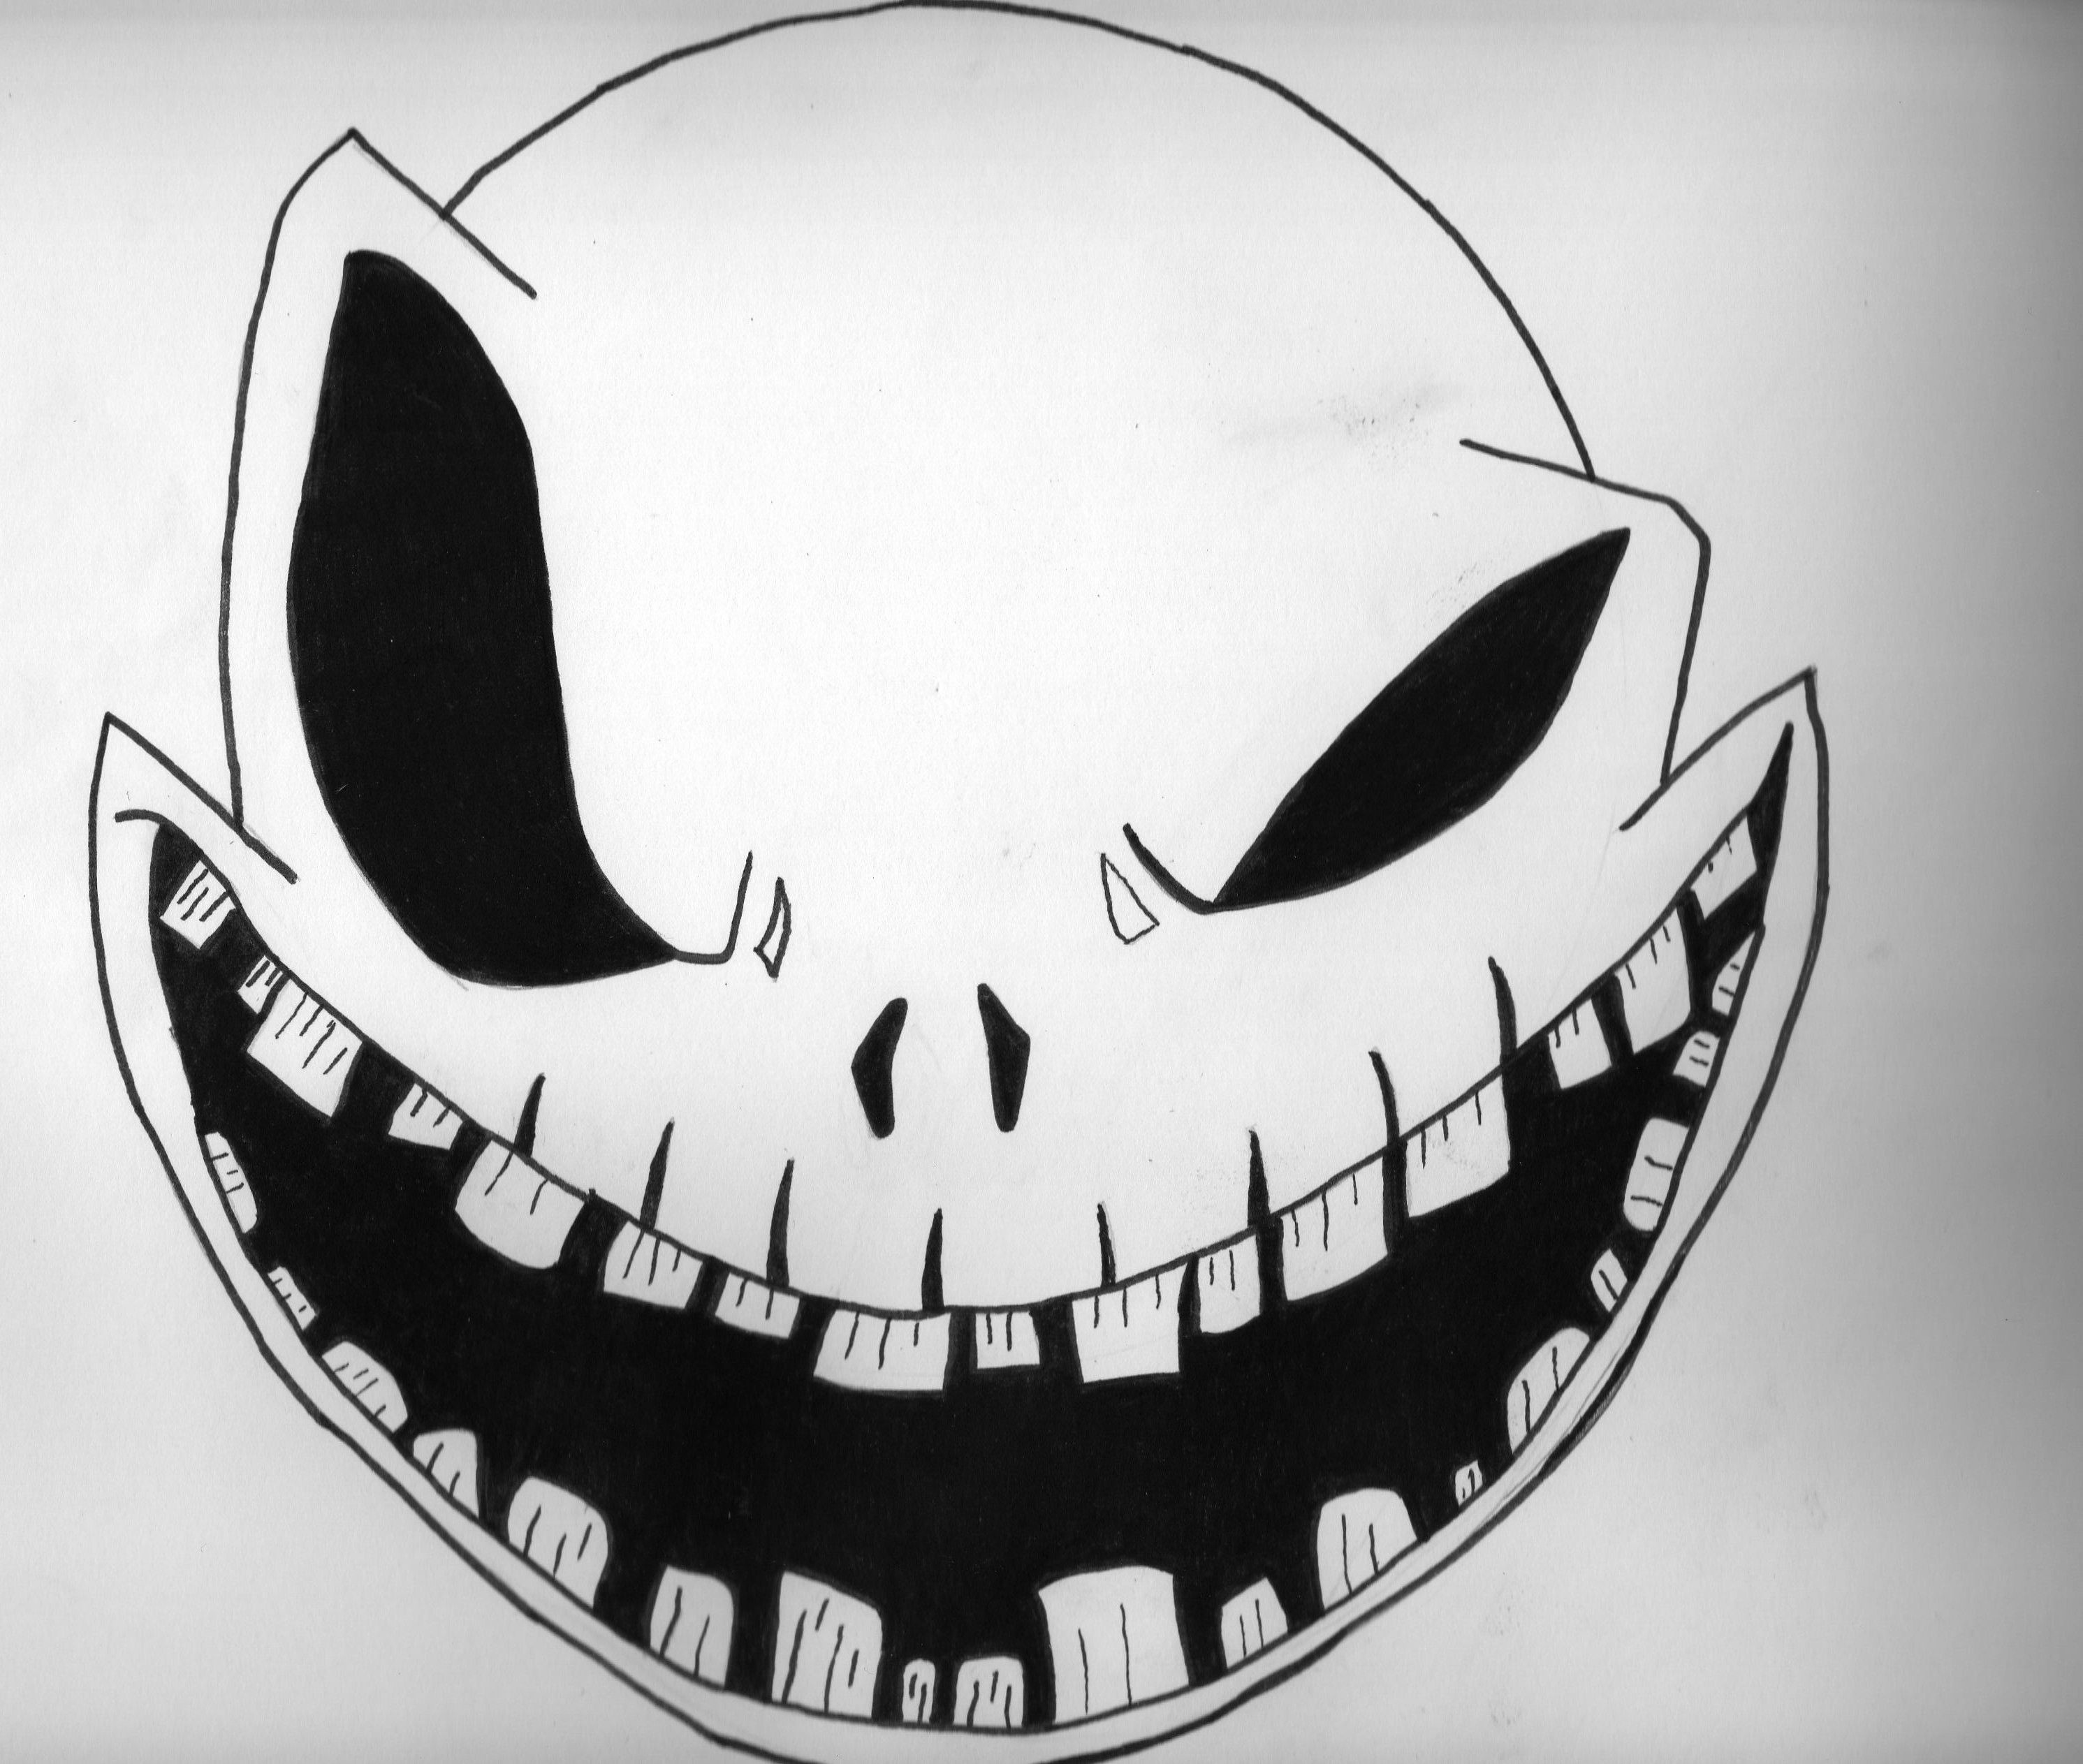 Scary Pumpkin Patterns Free Printable   Monster Face Pumpkin Stencil - Scary Pumpkin Patterns Free Printable